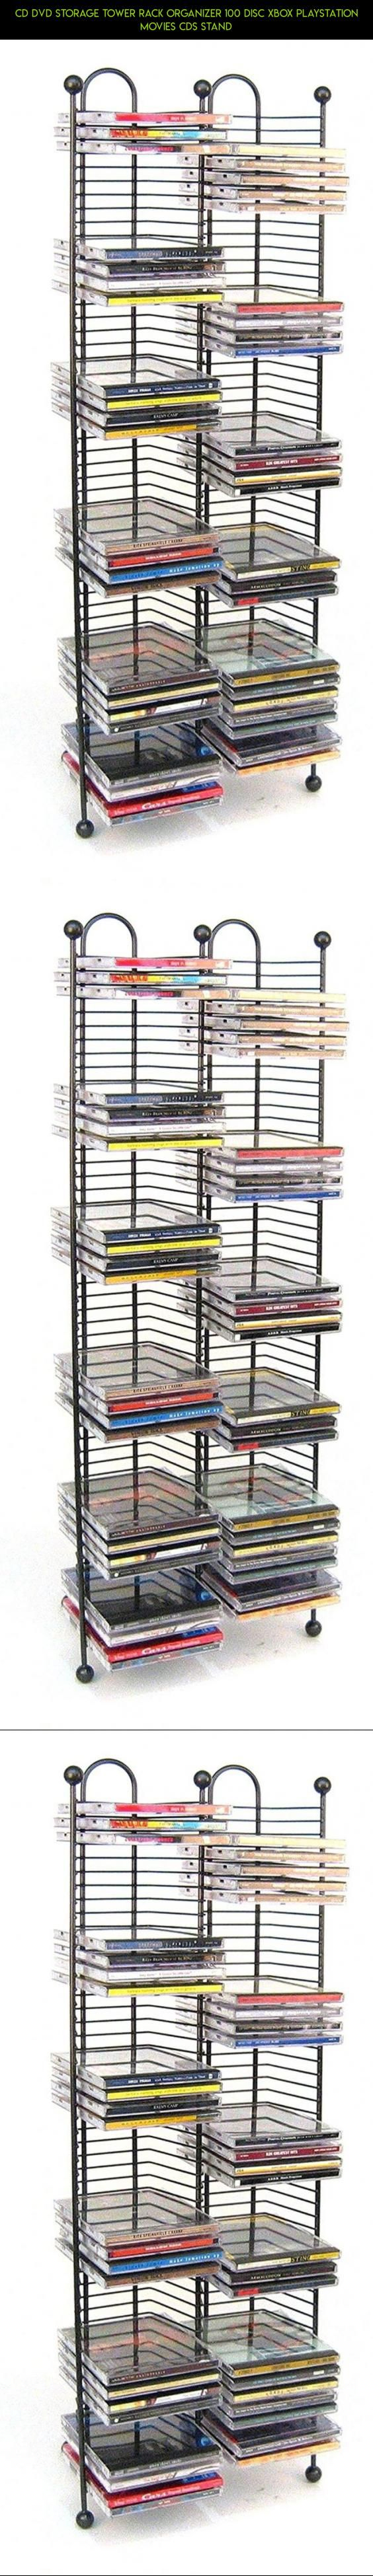 CD DVD Storage Tower Rack Organizer 100 Disc Xbox Playstation Movies CDs  Stand #fpv #